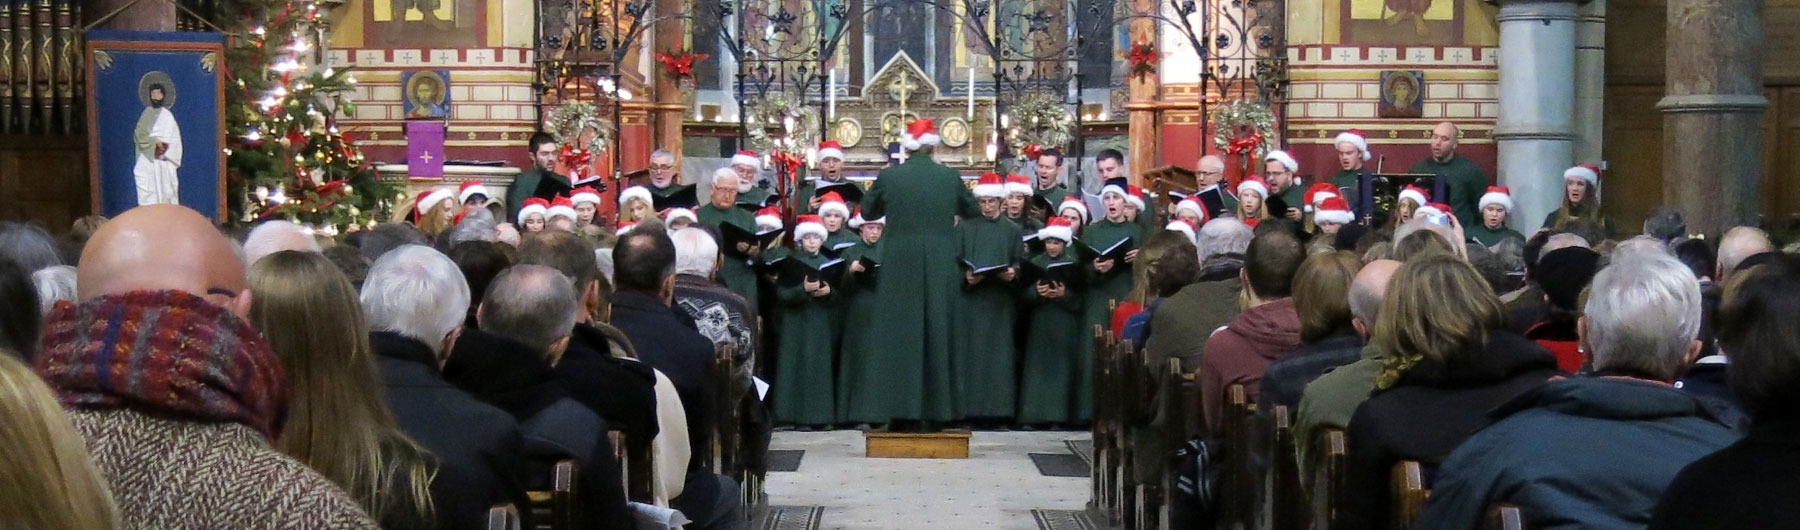 Concert of Carols and Festive Readings